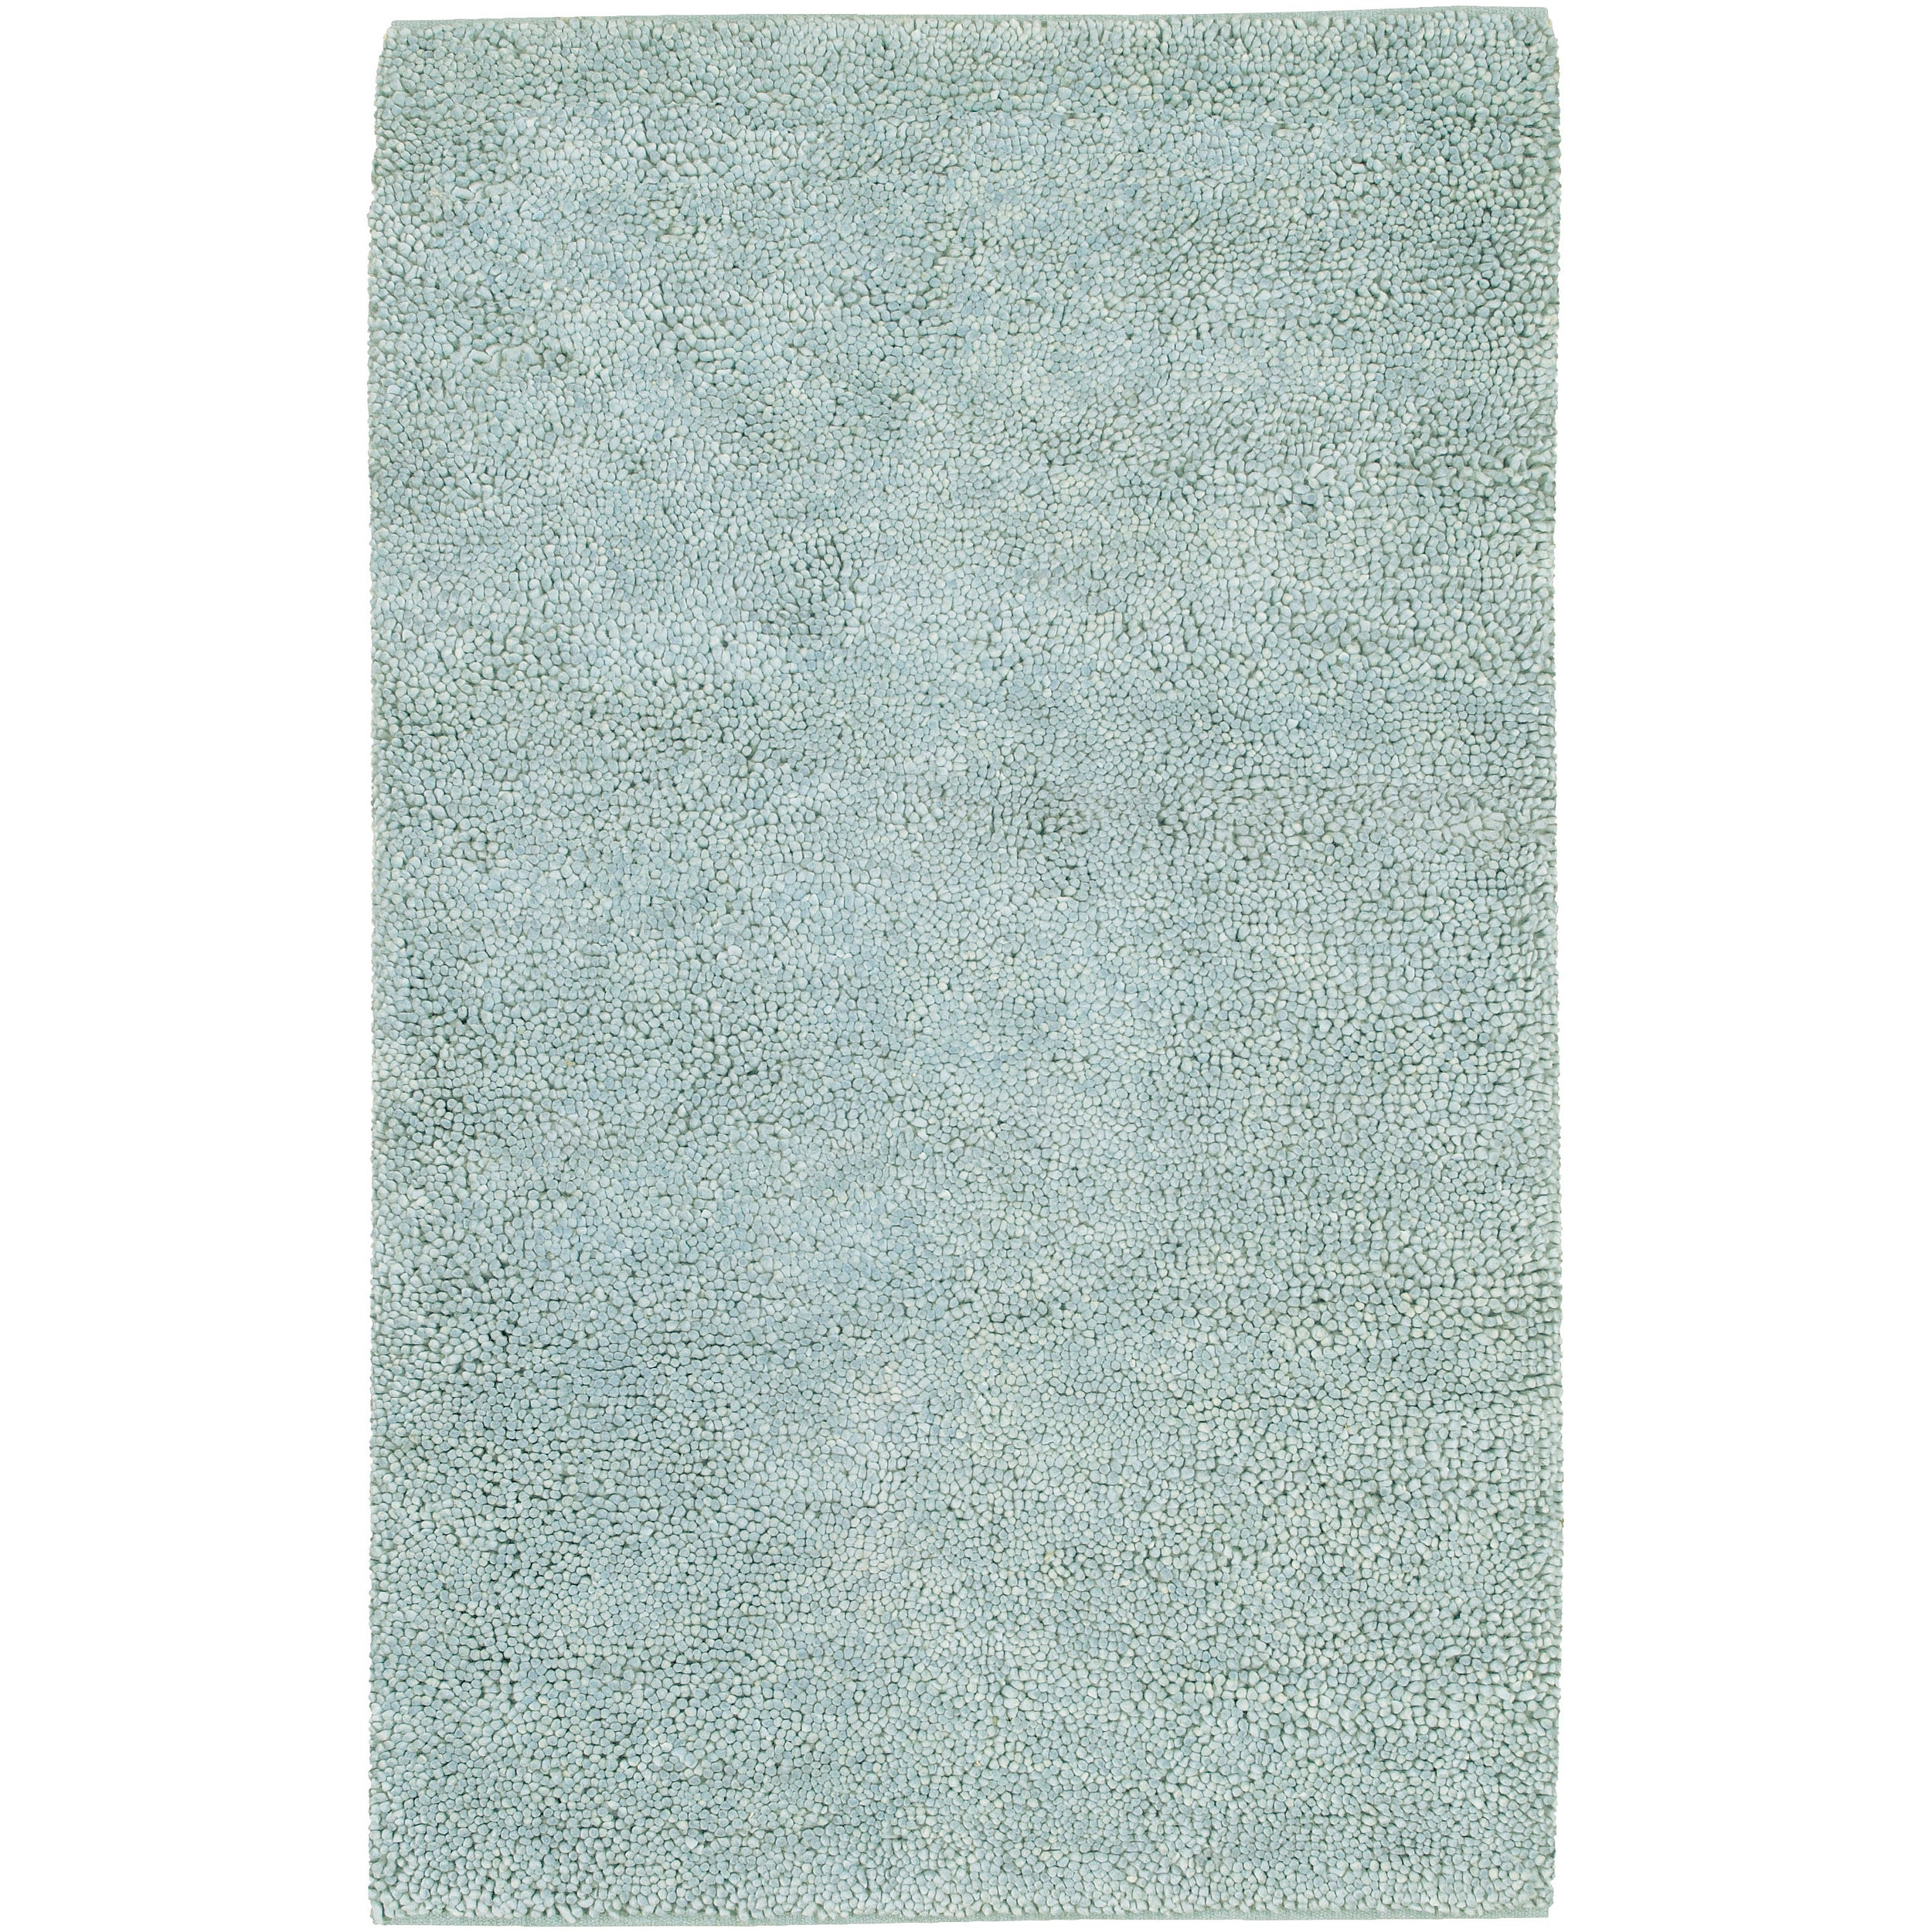 Han-woven Eagle Spa Blue Wool Rug (4' x 10')